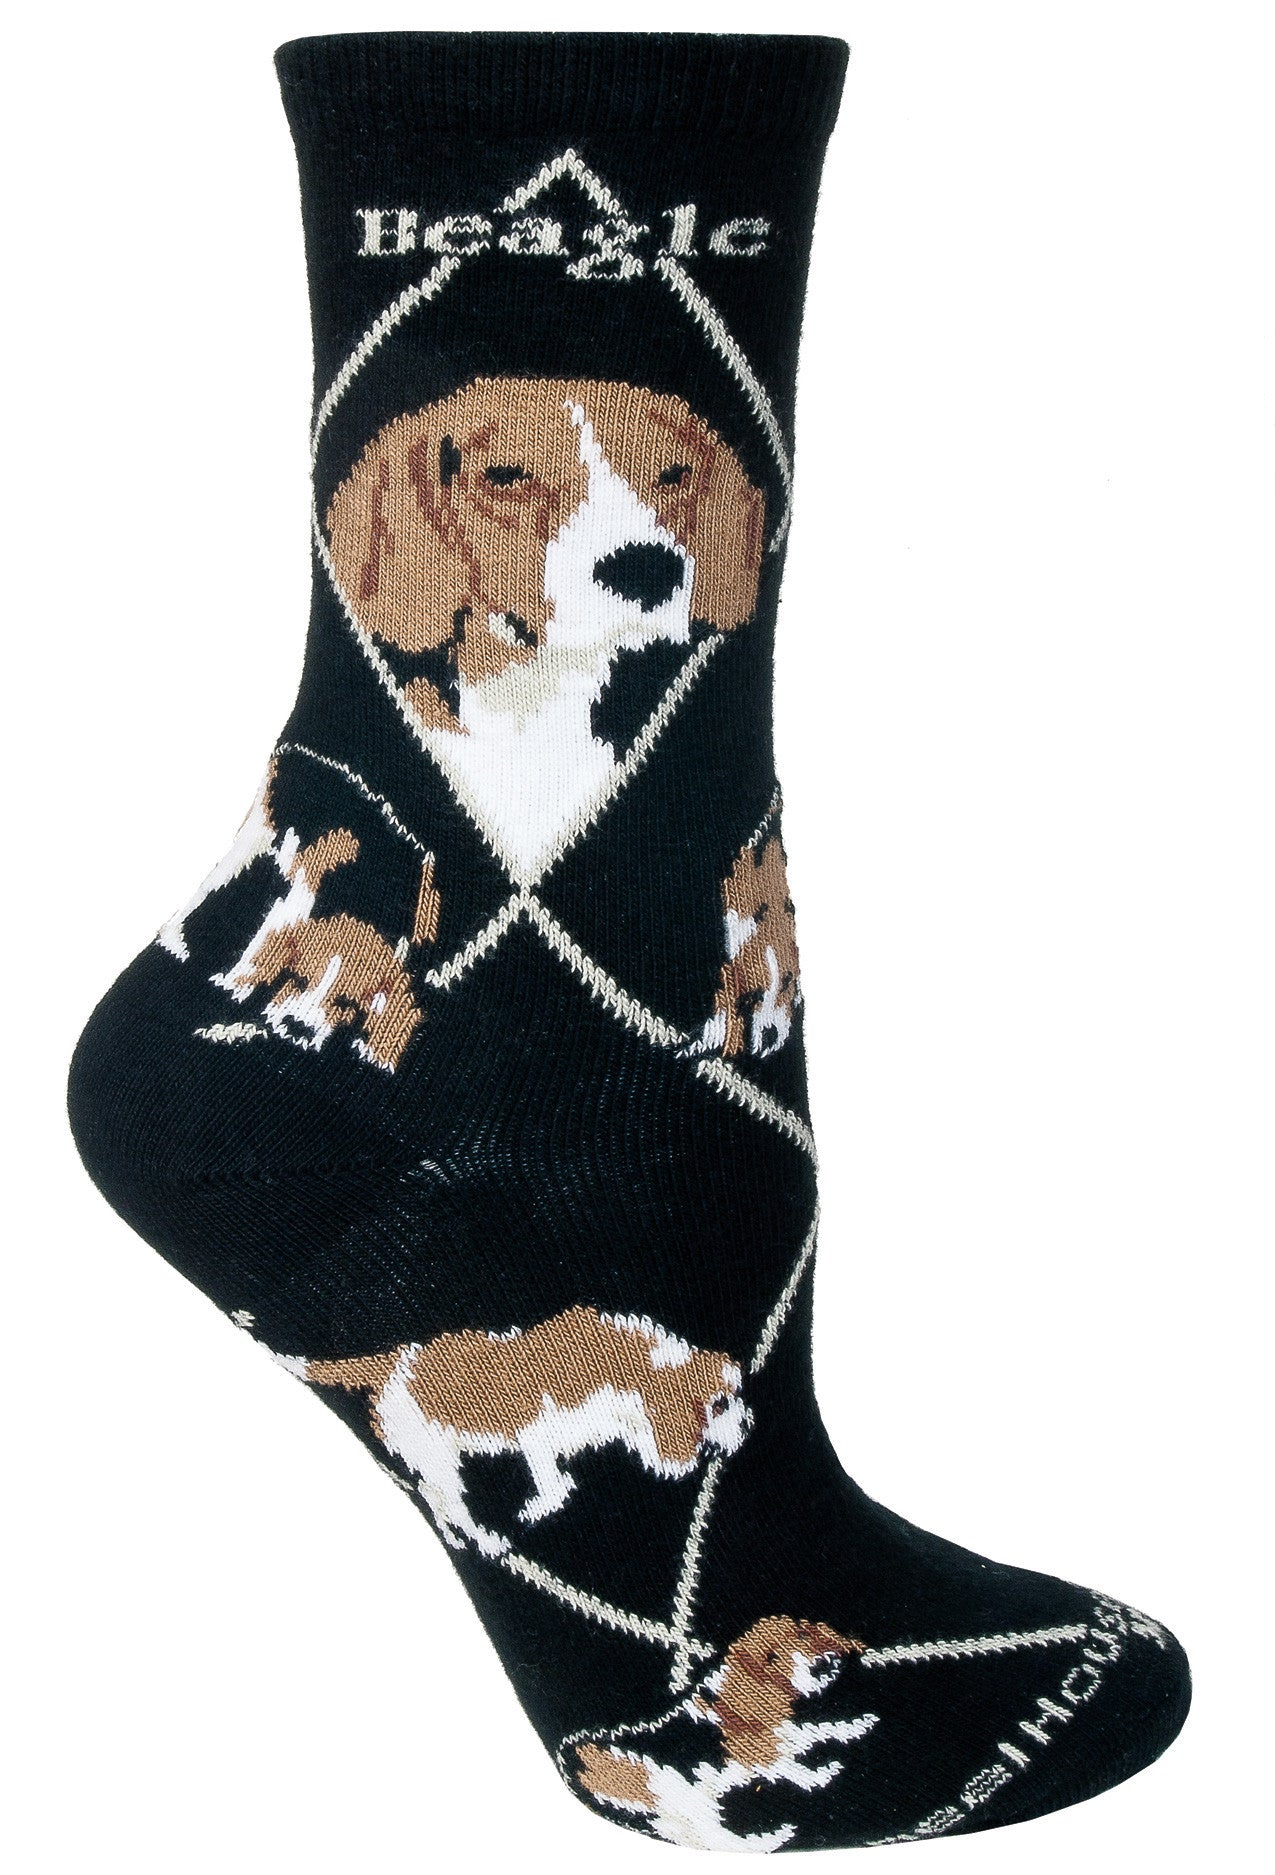 Beagle Crew Socks on Black